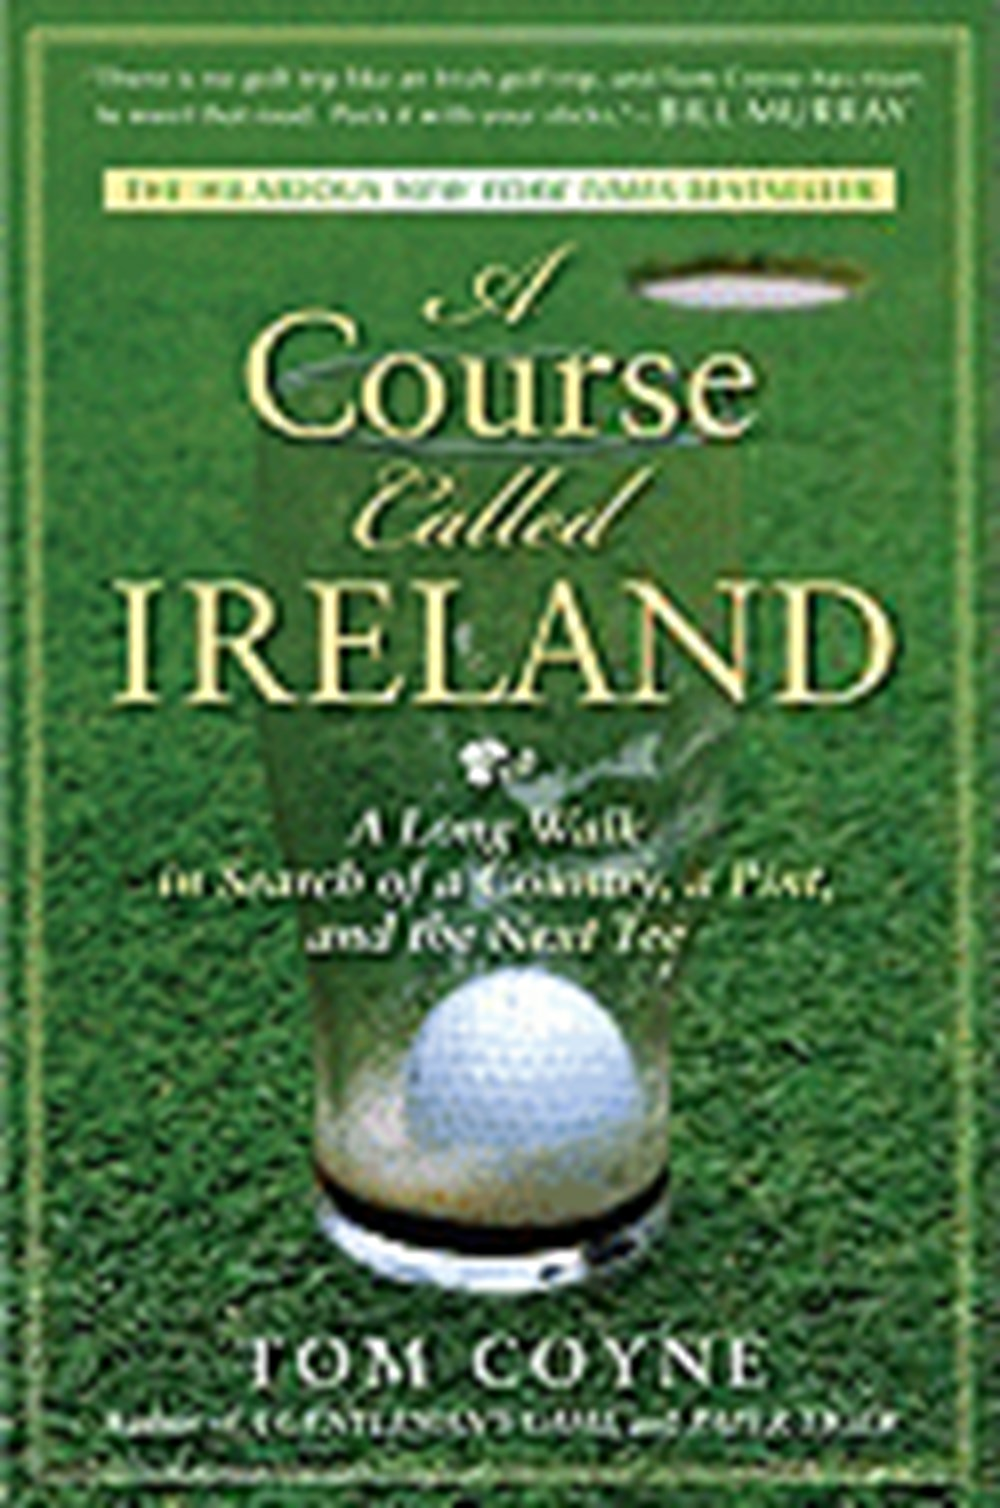 Course Called Ireland A Long Walk in Search of a Country, a Pint, and the Next Tee